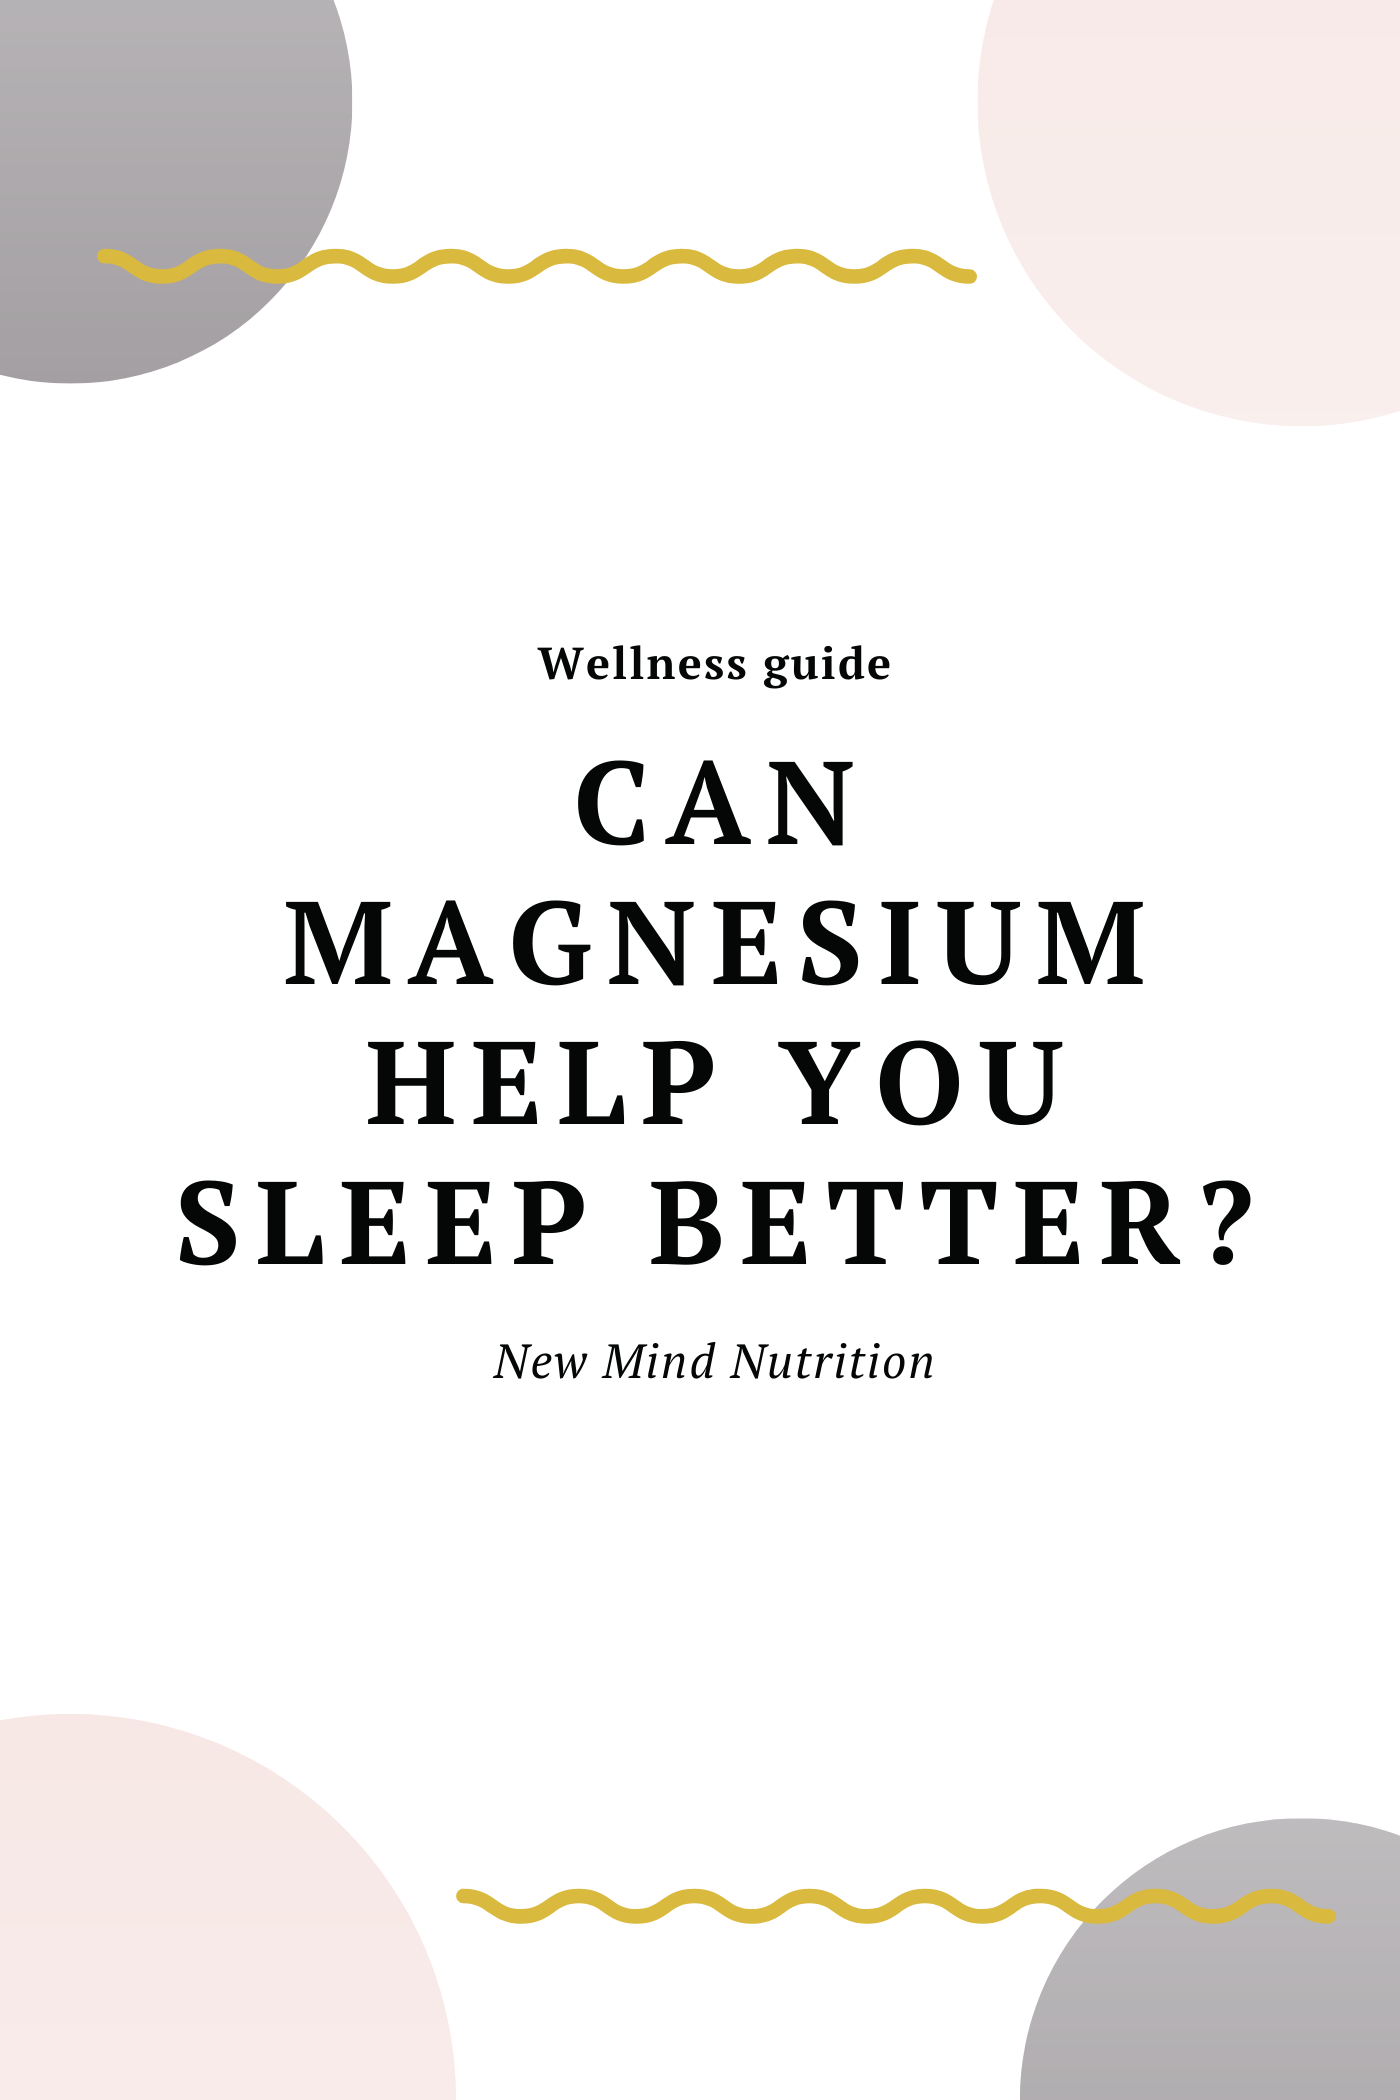 Everything you need to know about magnesium for sleep